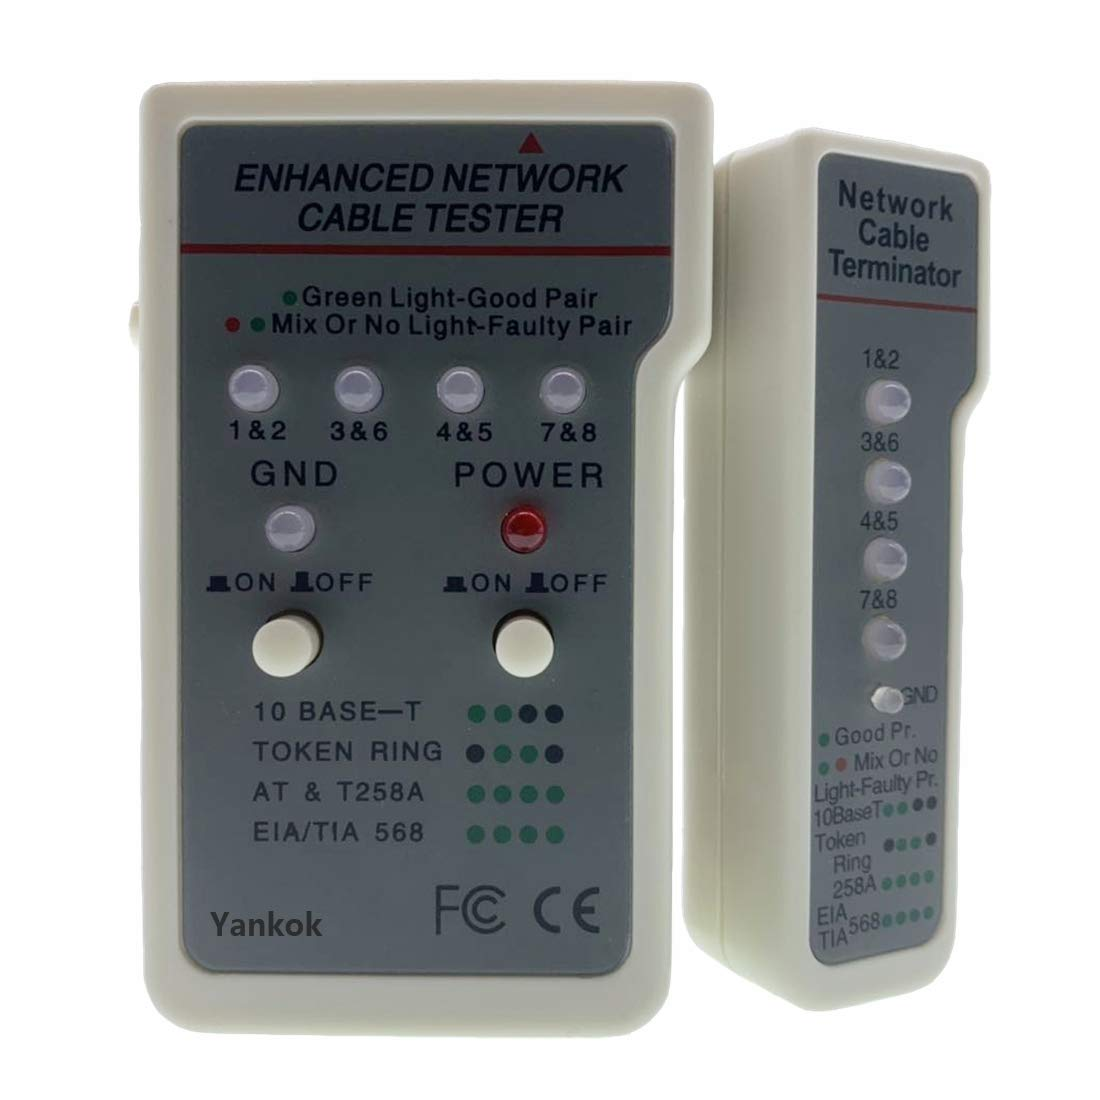 Yankok Network Cable Tester for Ethernet USB BNC UTP STP Coaxial and RJ45 RJ11 Modular Cables User Manual Included